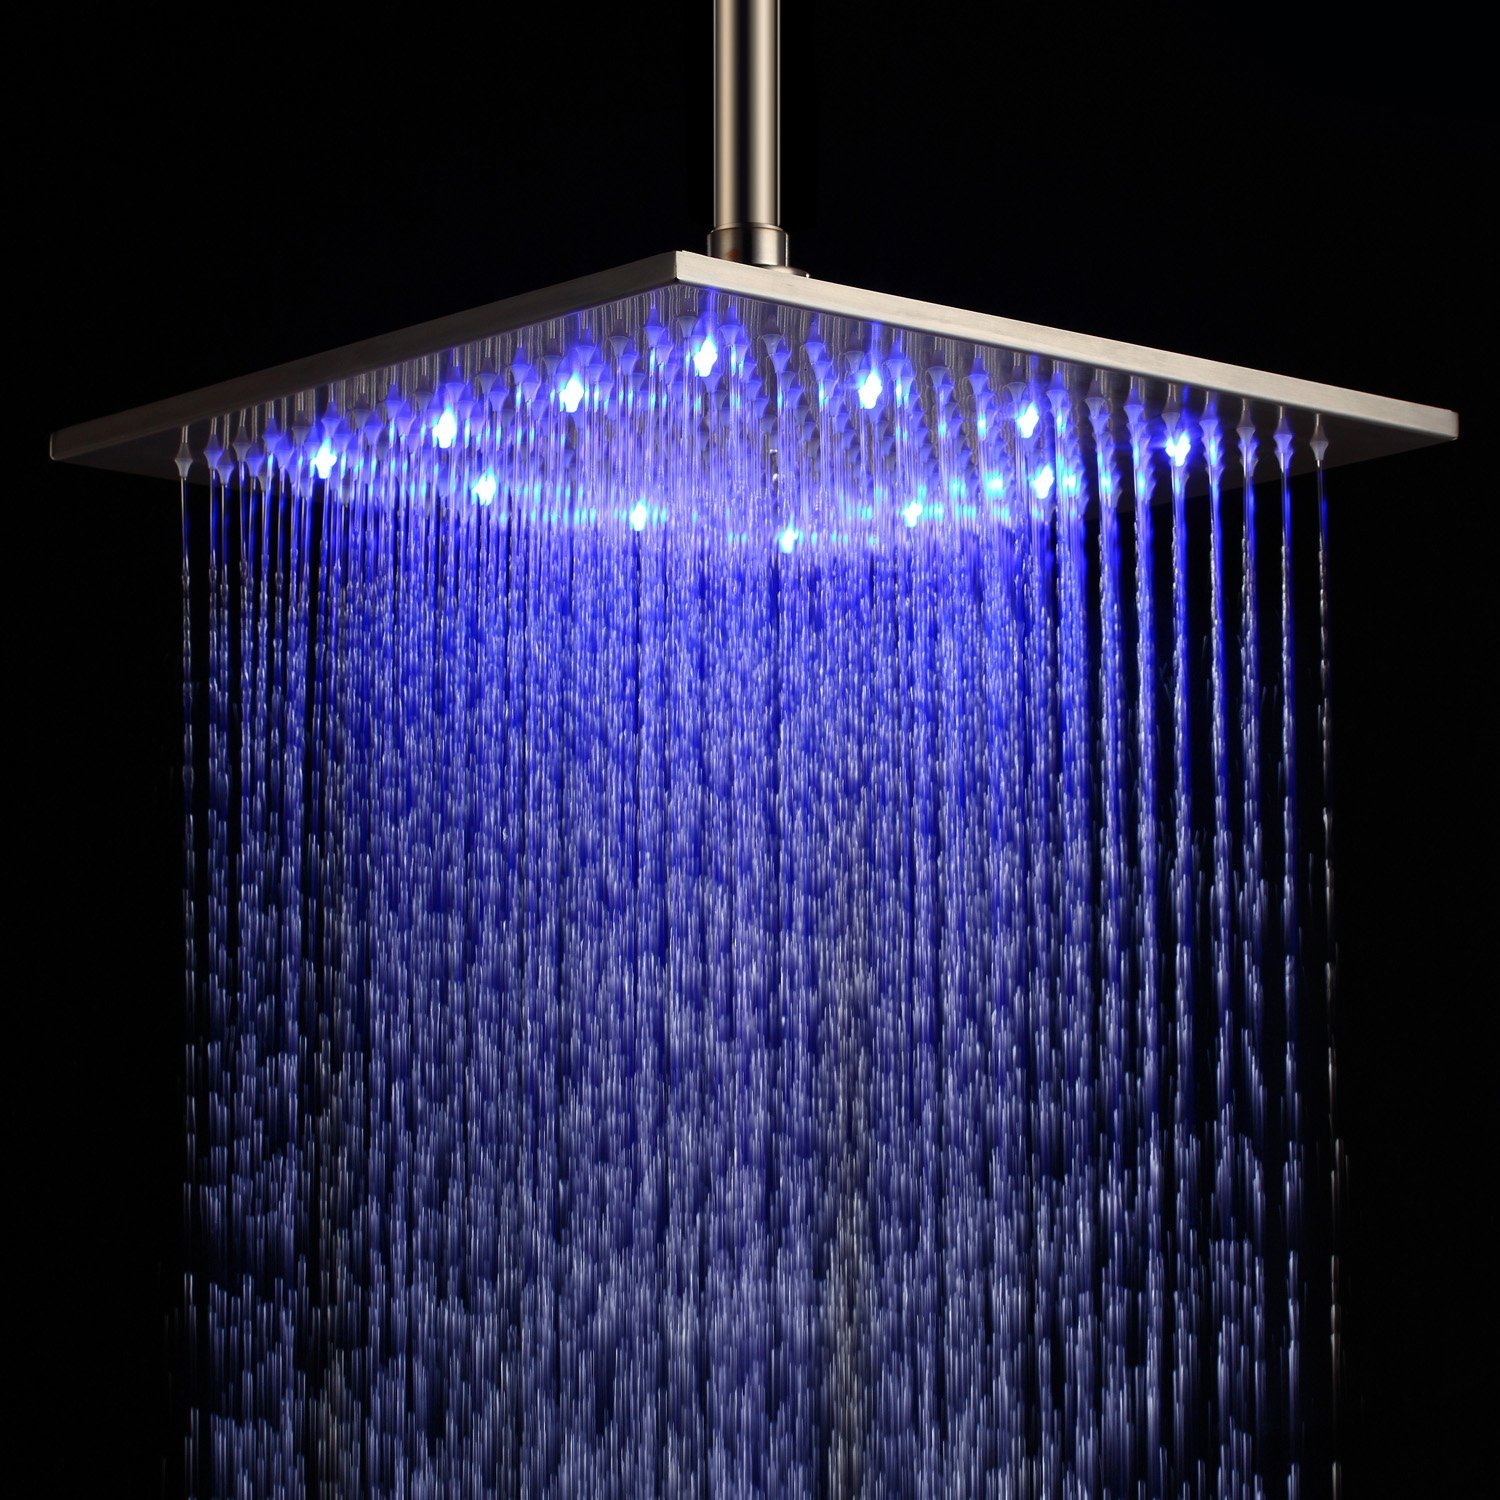 Details About 12 Inch Led Square Ceiling Mount Rain Shower Head Brushed Nickel Stainless Steel